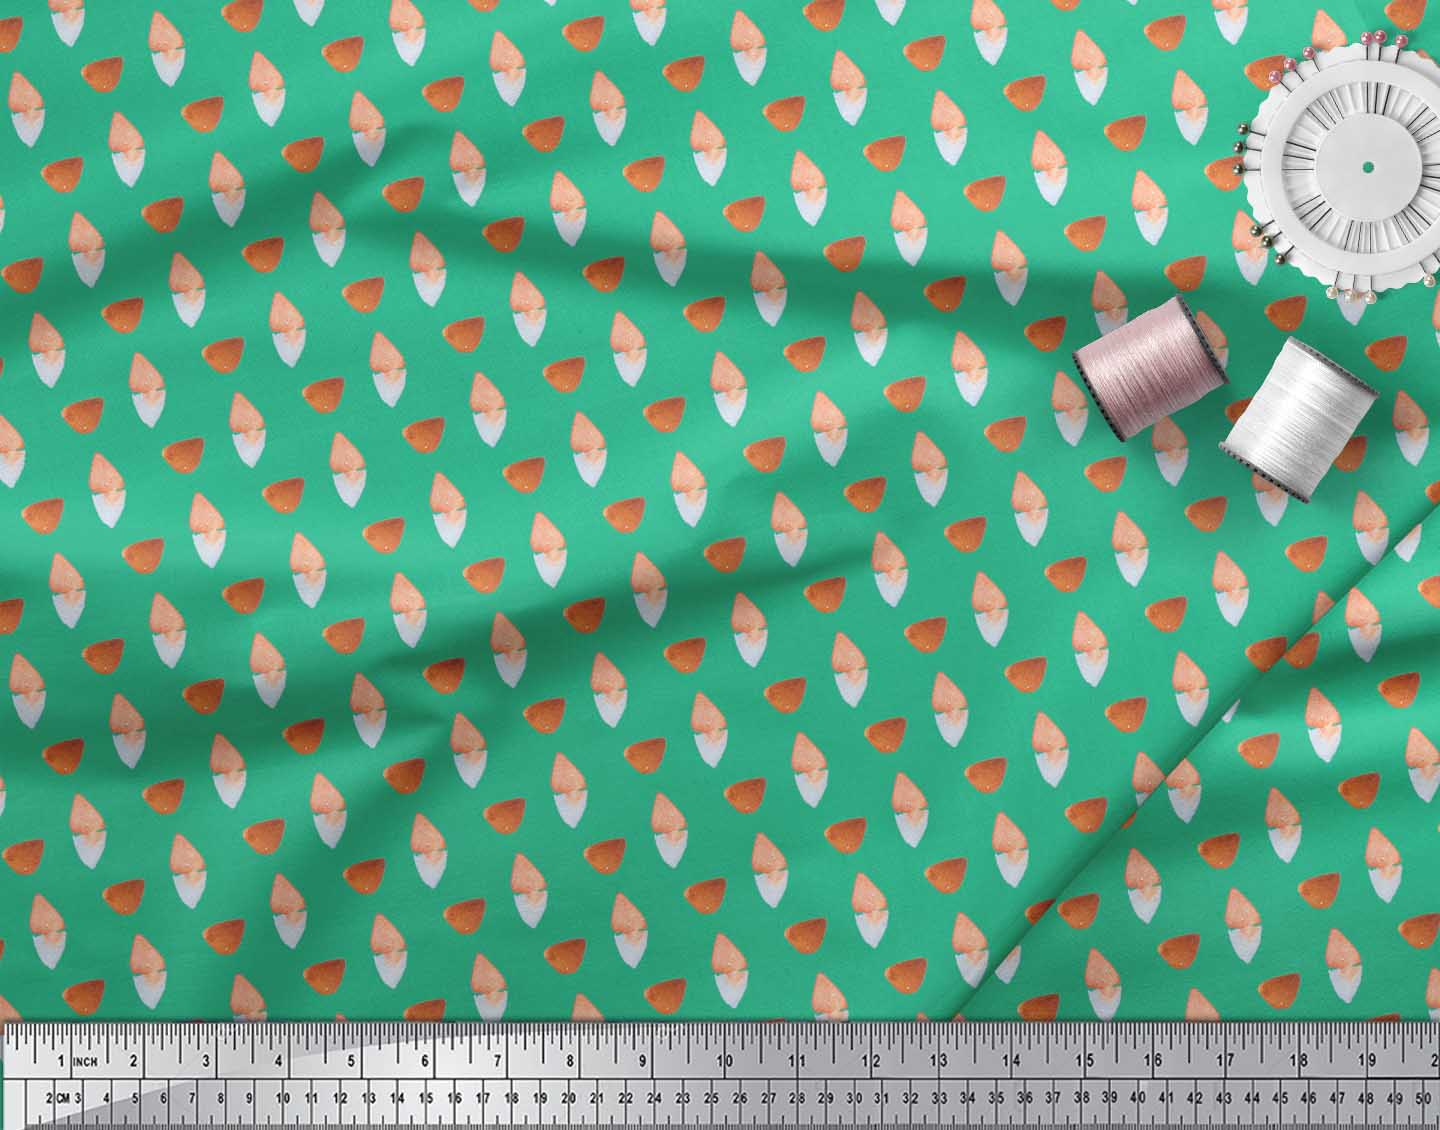 Soimoi-Green-Cotton-Poplin-Fabric-Tumble-Stone-Abstract-Print-Fabric-Xtr thumbnail 3